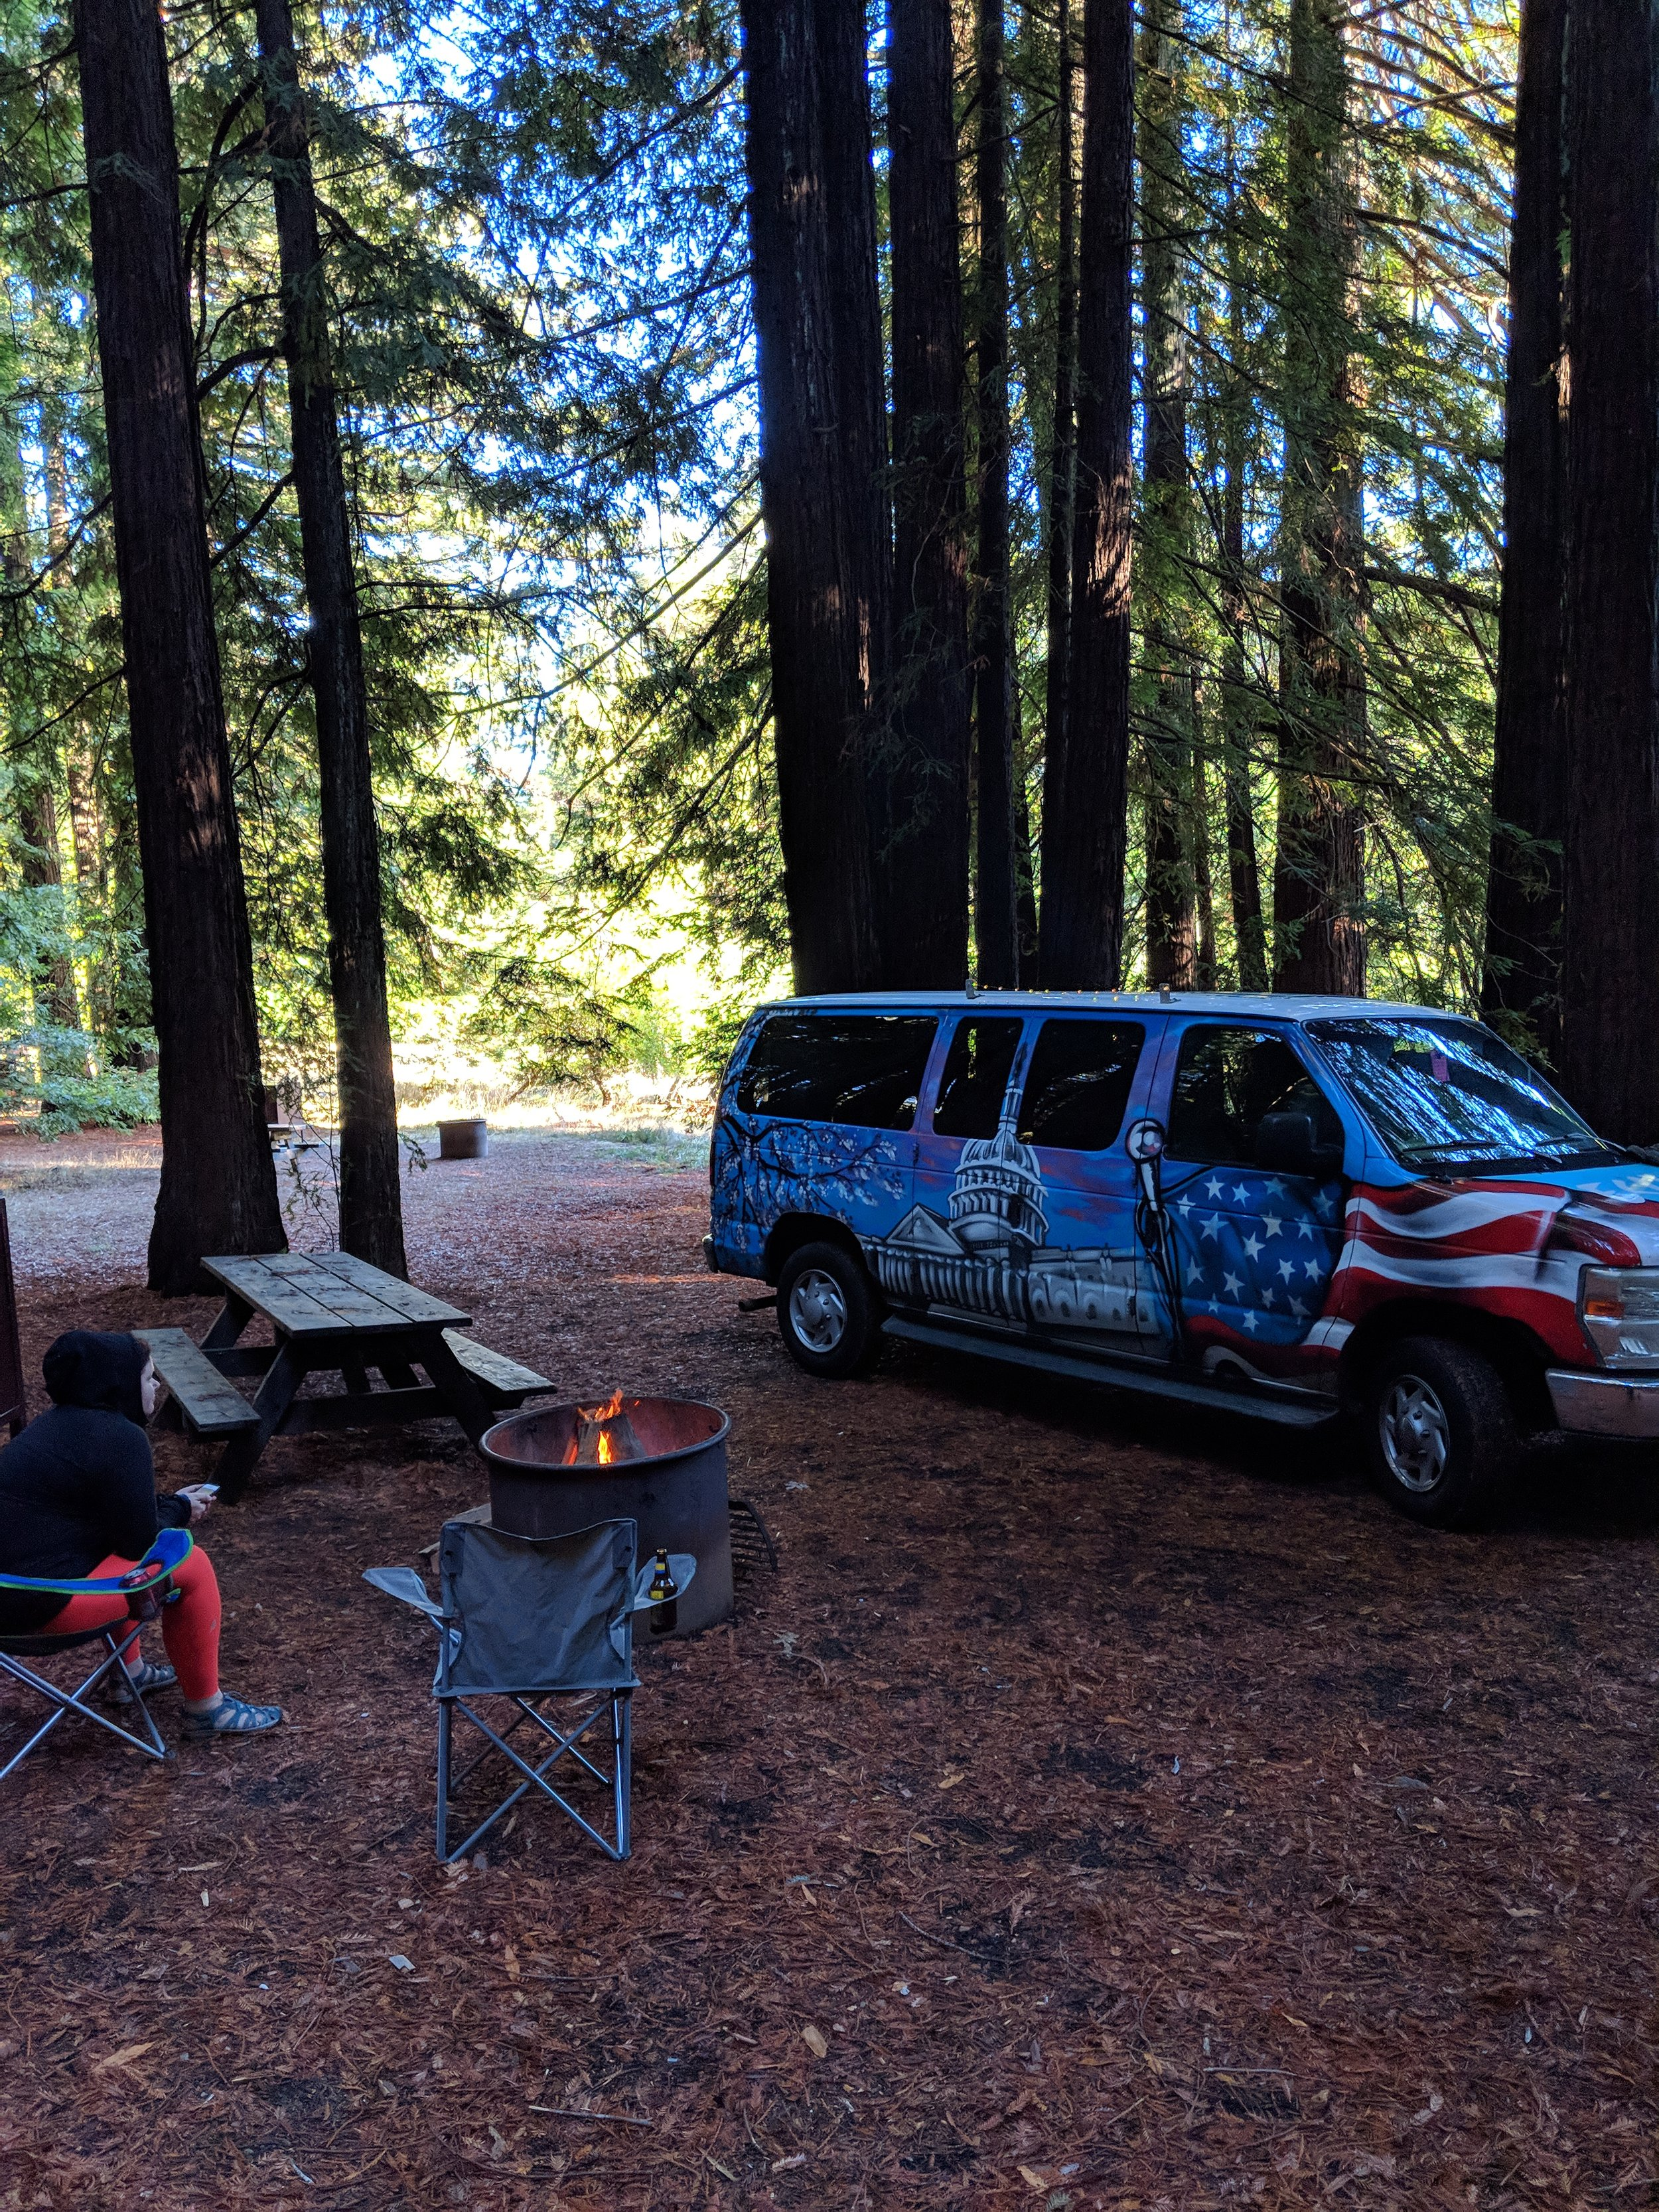 Campsite at Albee Campground in Humboldt Redwoods State Park